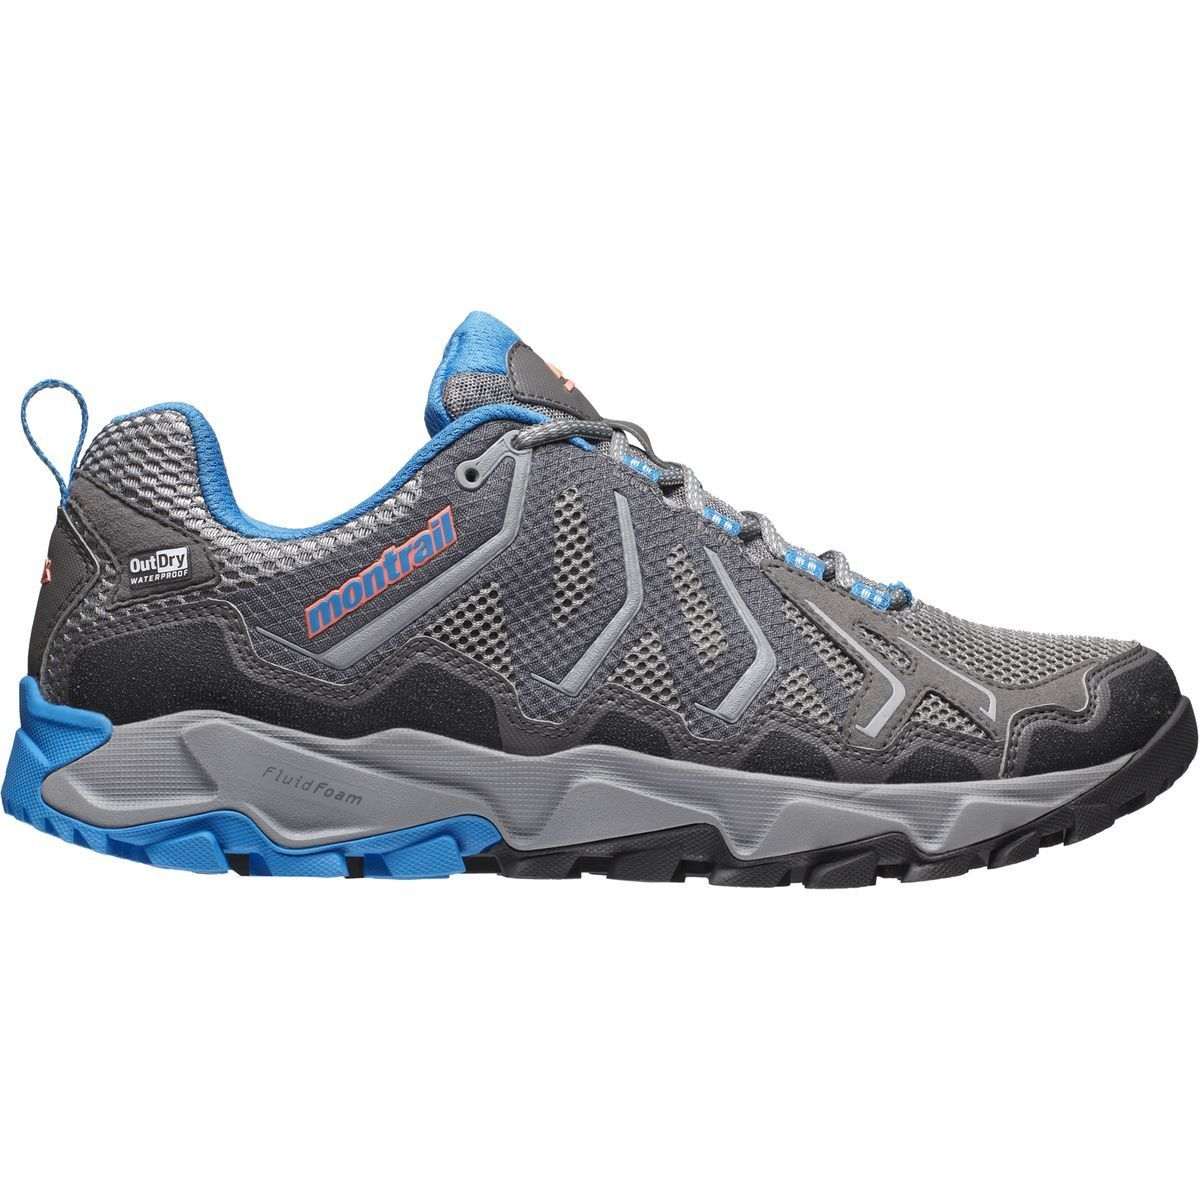 Montrail Trans Alps OutDry Trail Running Shoe Women's